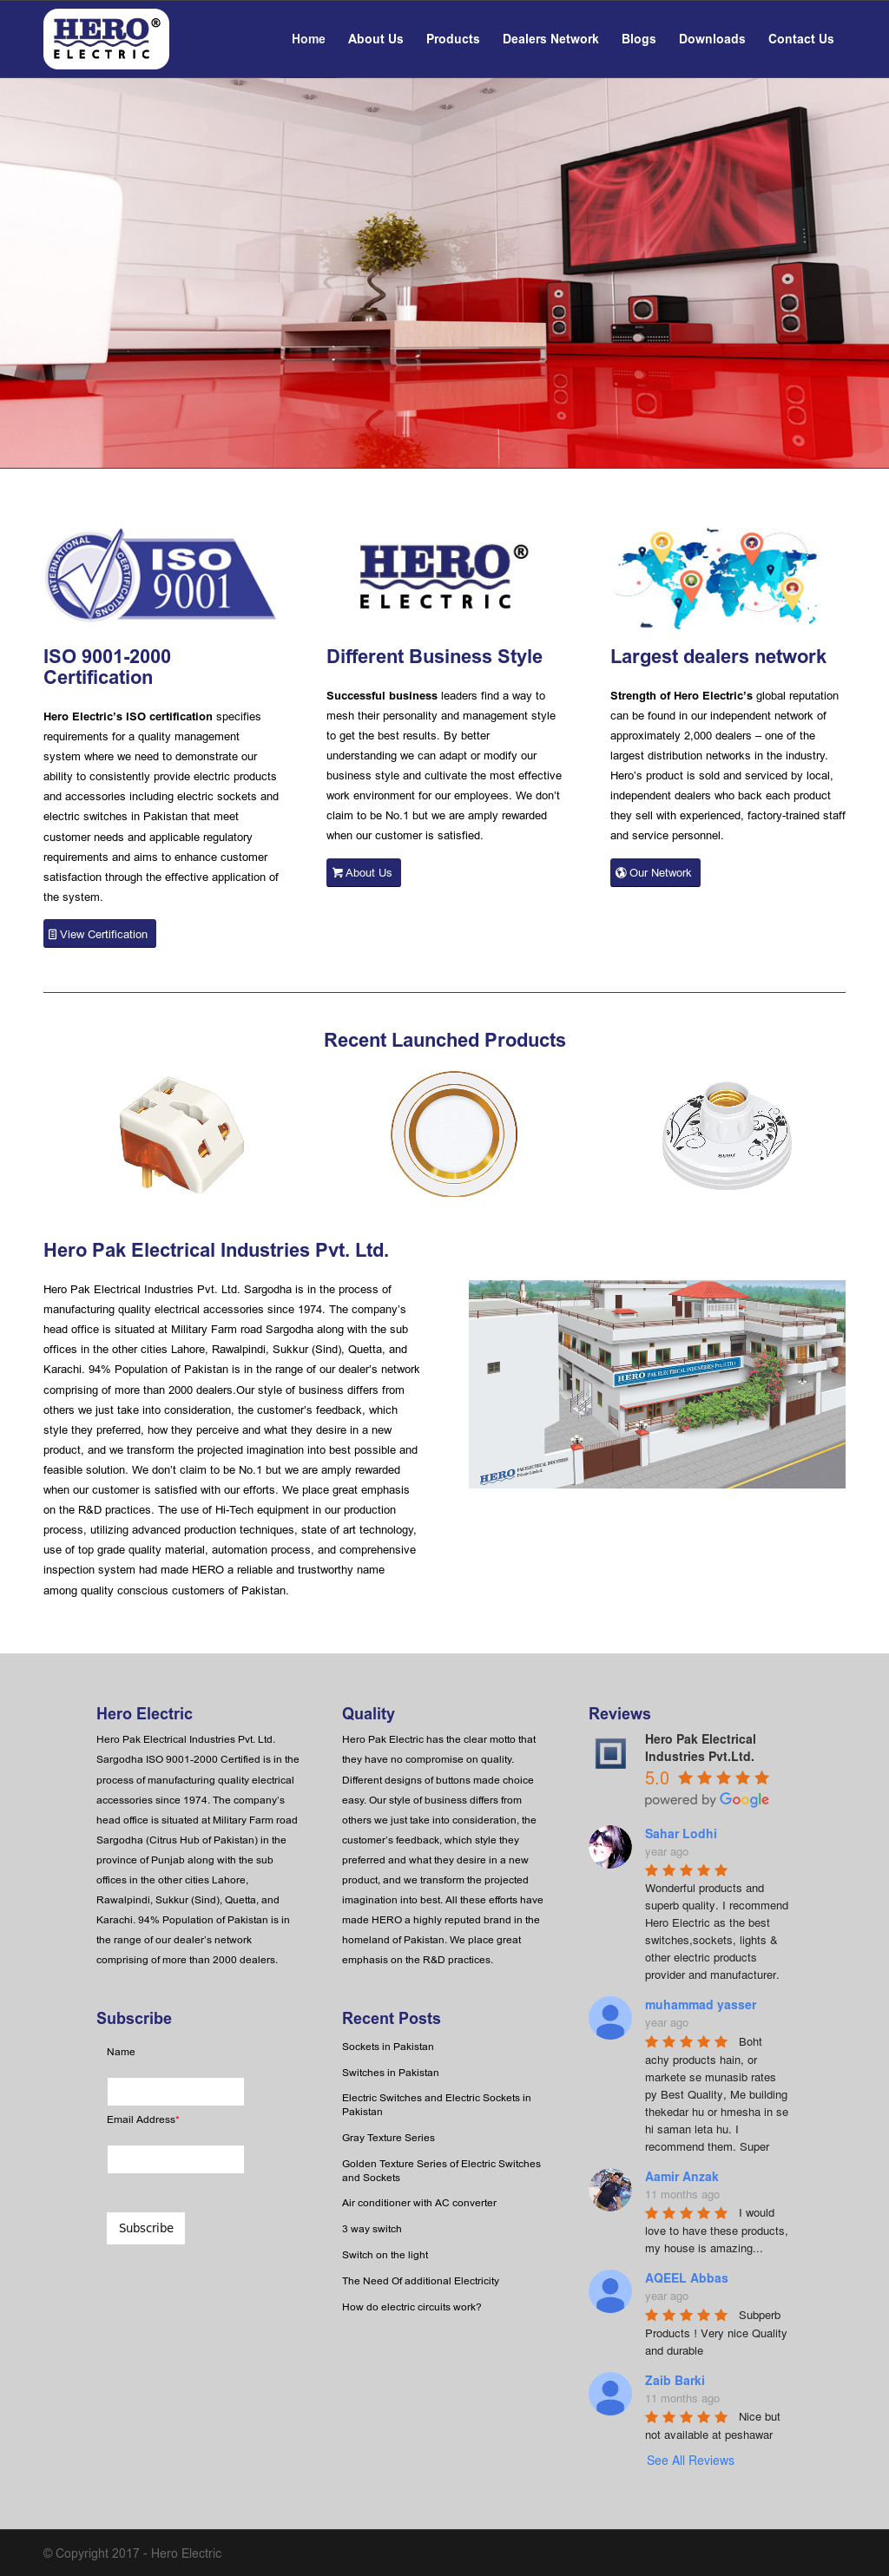 Hero Electric Competitors Revenue And Employees Owler Company Profile 3 Way Switch History Website